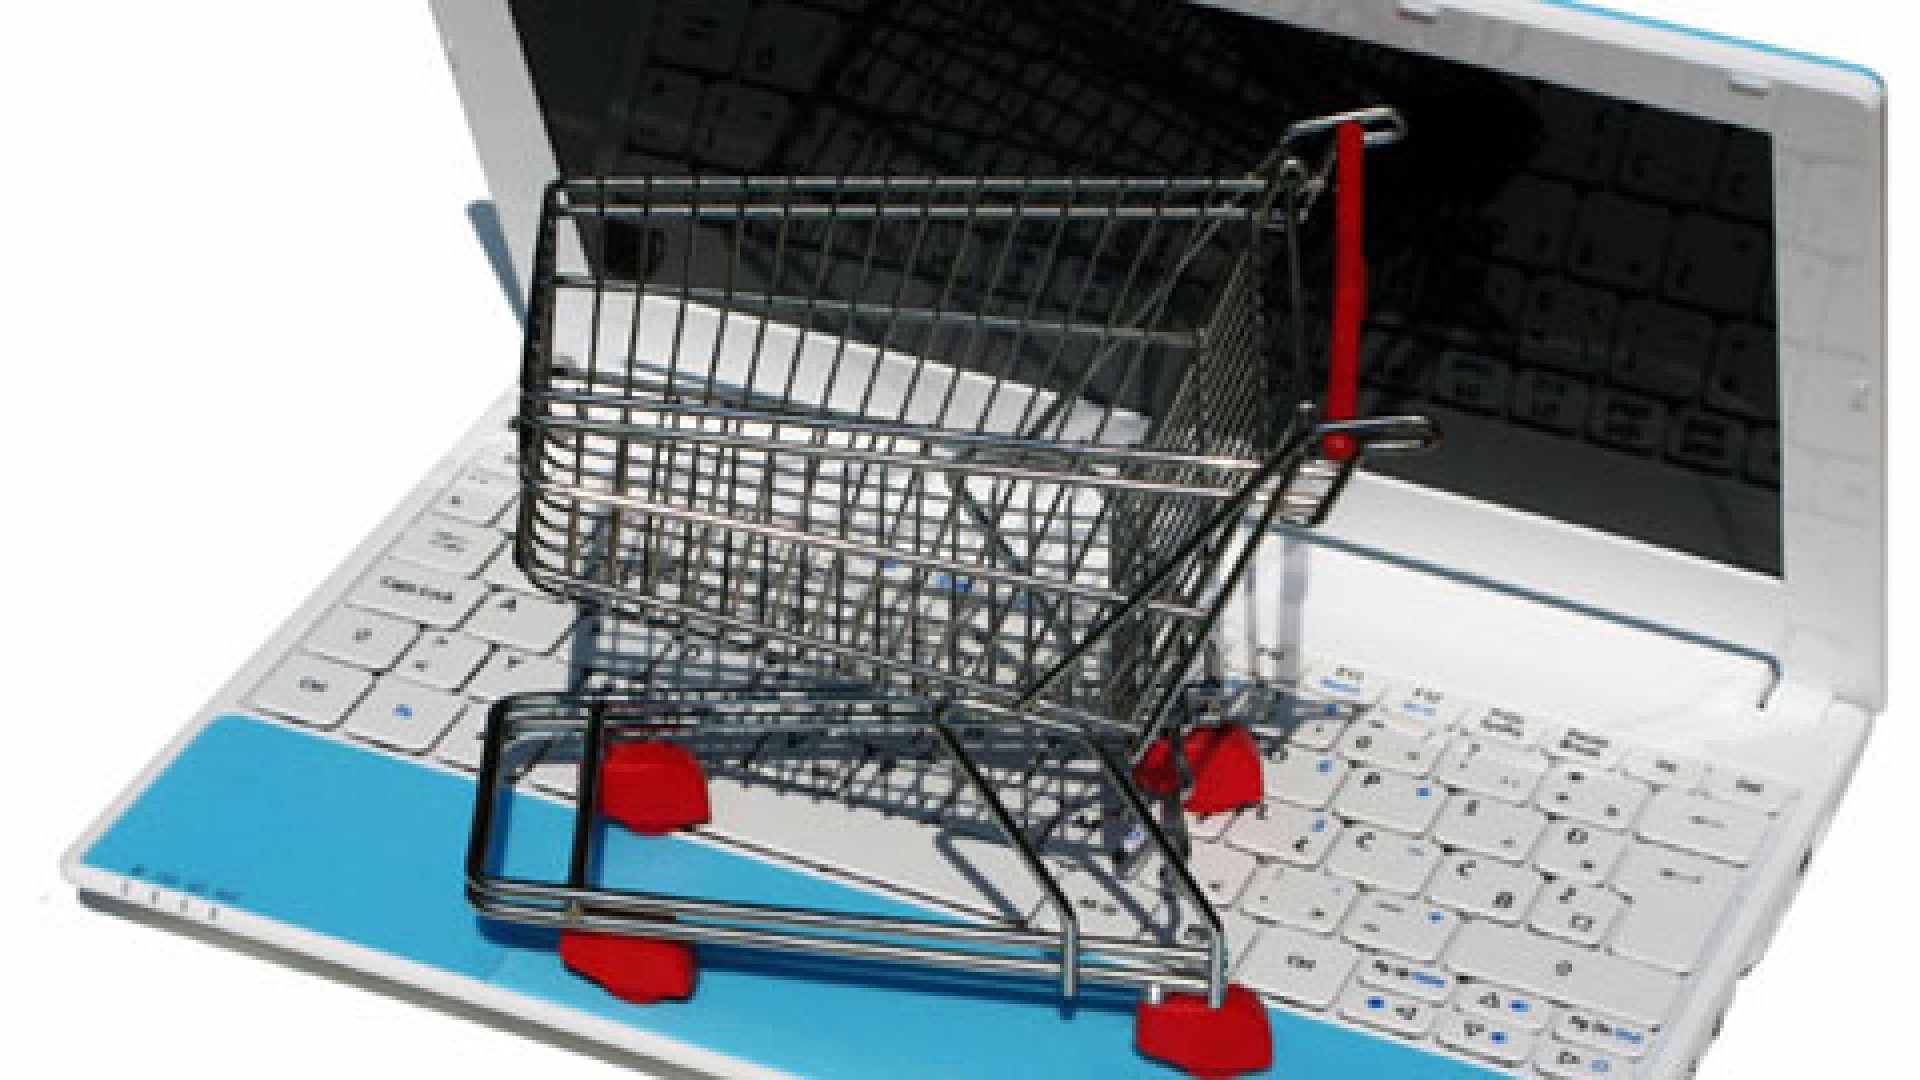 3 Things Cyber Monday Can Teach You About Marketing